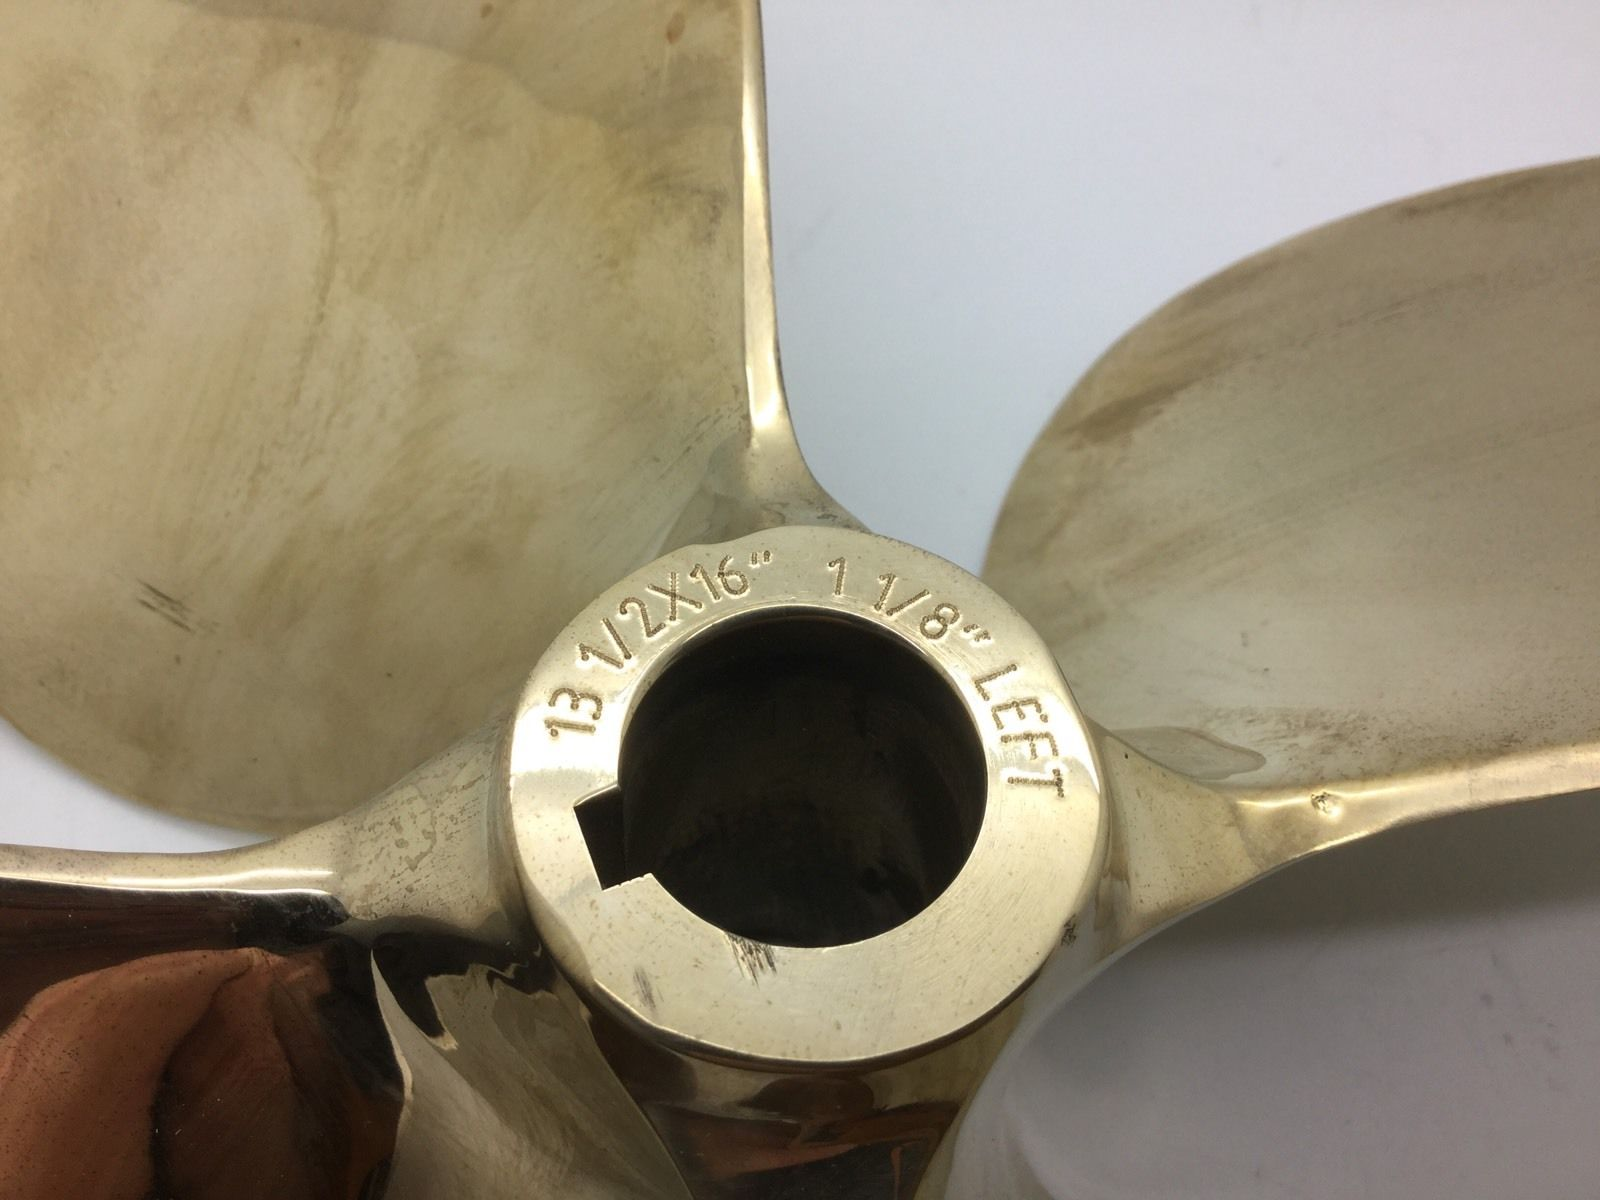 Acme export Malibu 537 Propeller No- Oz Marine 4x13 1/2x16